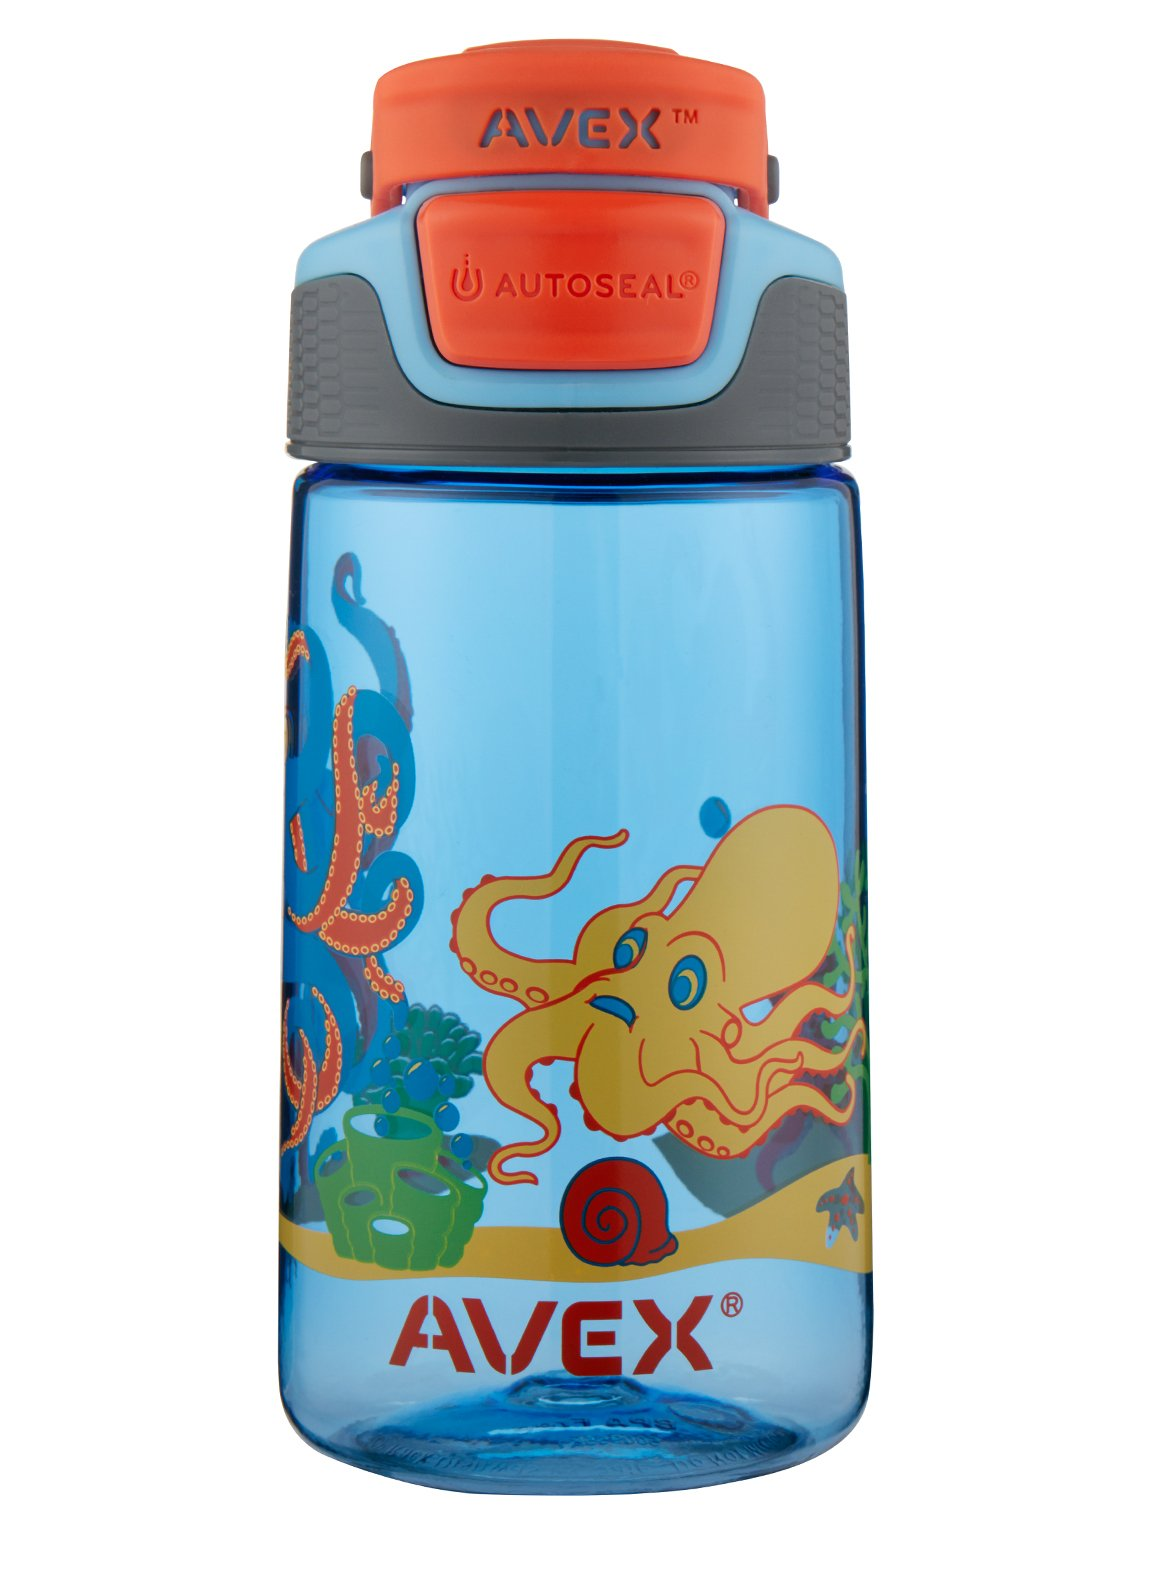 Avex Kids Freeride Octopus Autoseal Water Bottle, Baby Blue, 16 oz